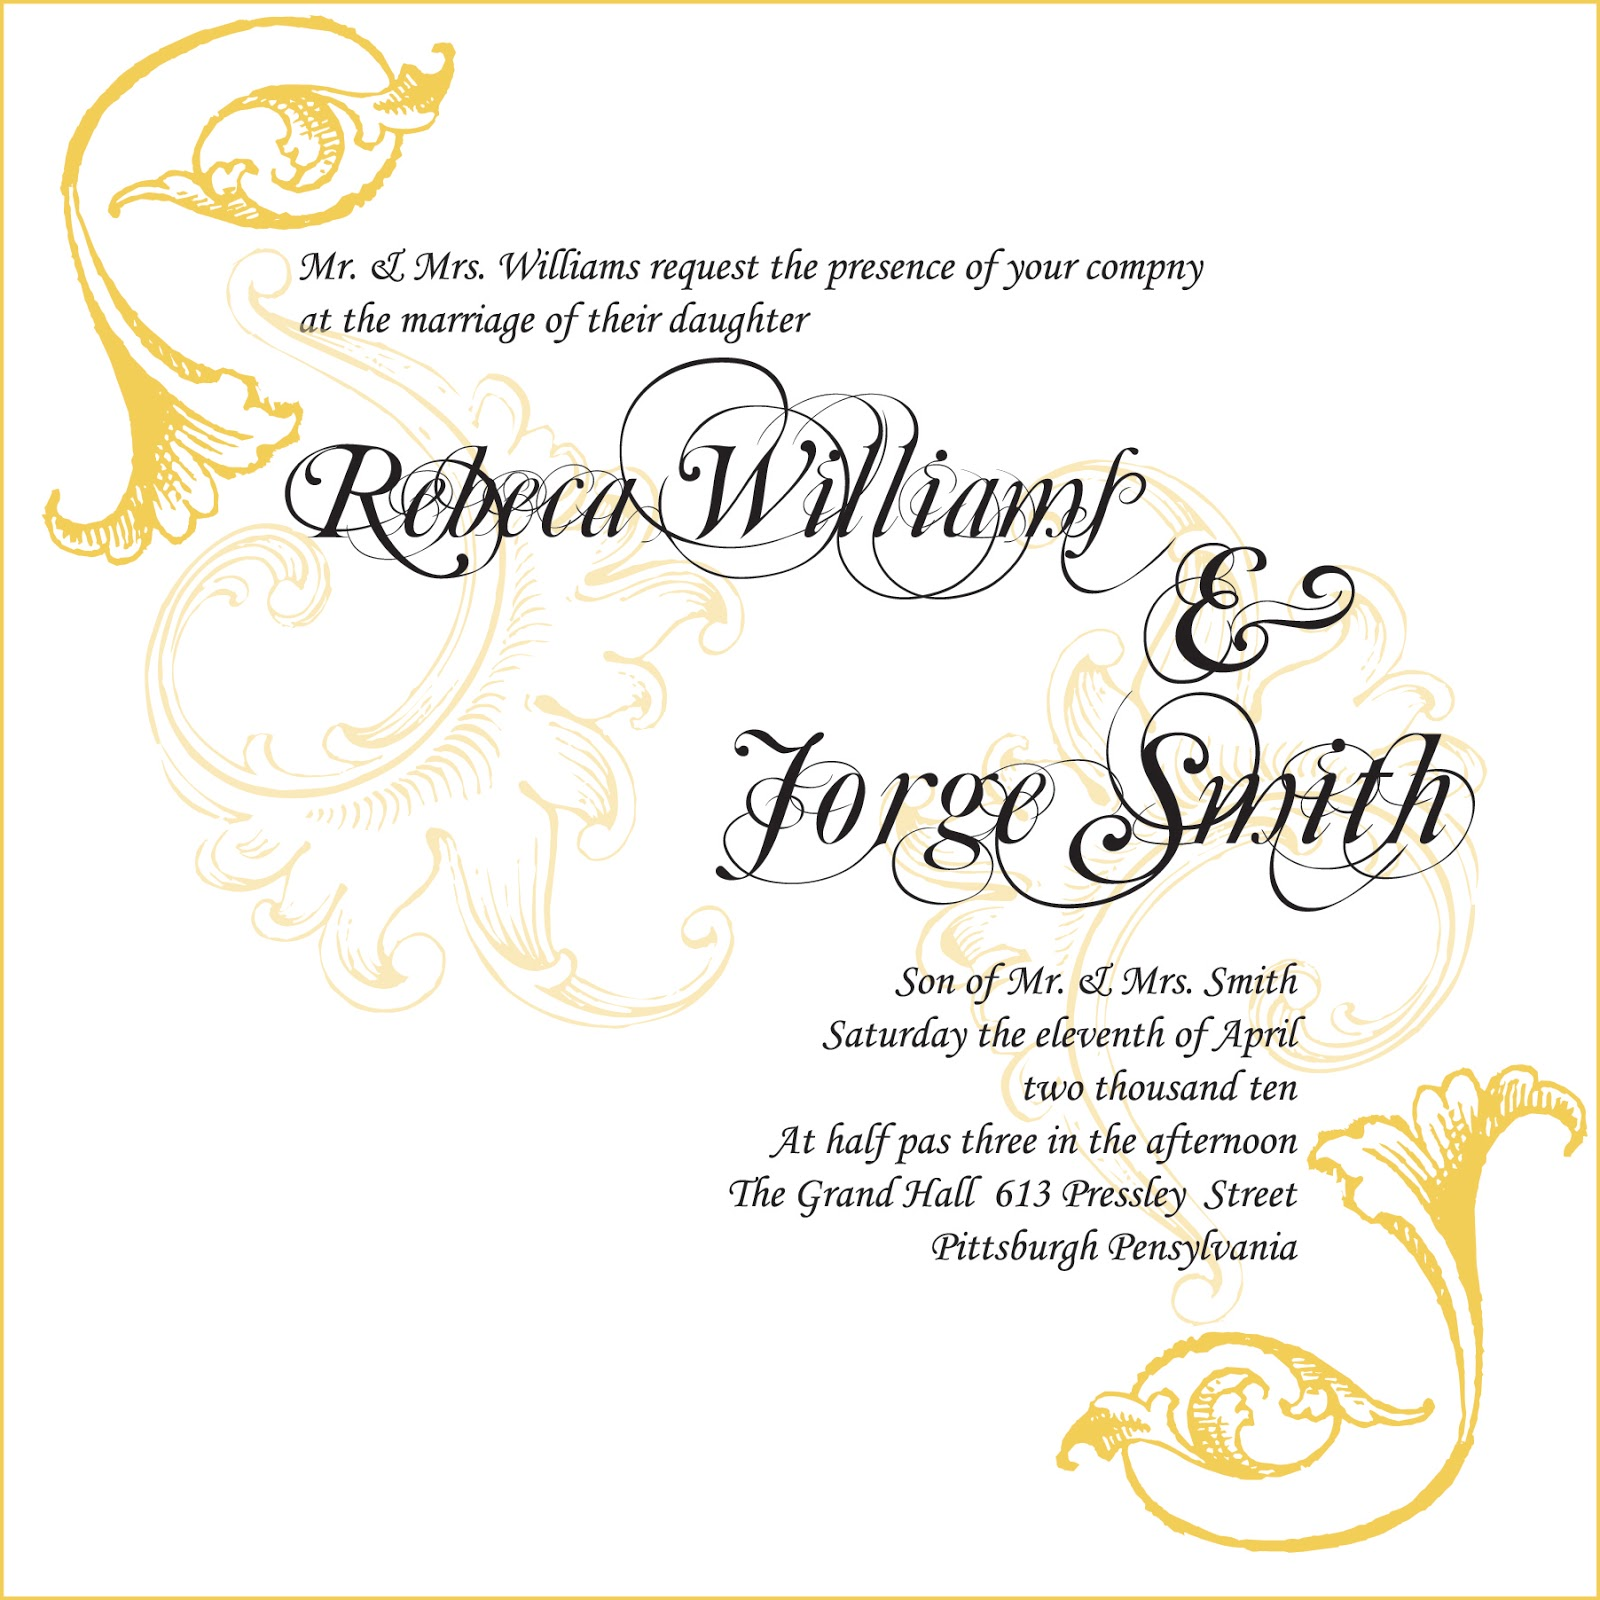 Sample Invitations For Wedding: Wedding Invitation Samples